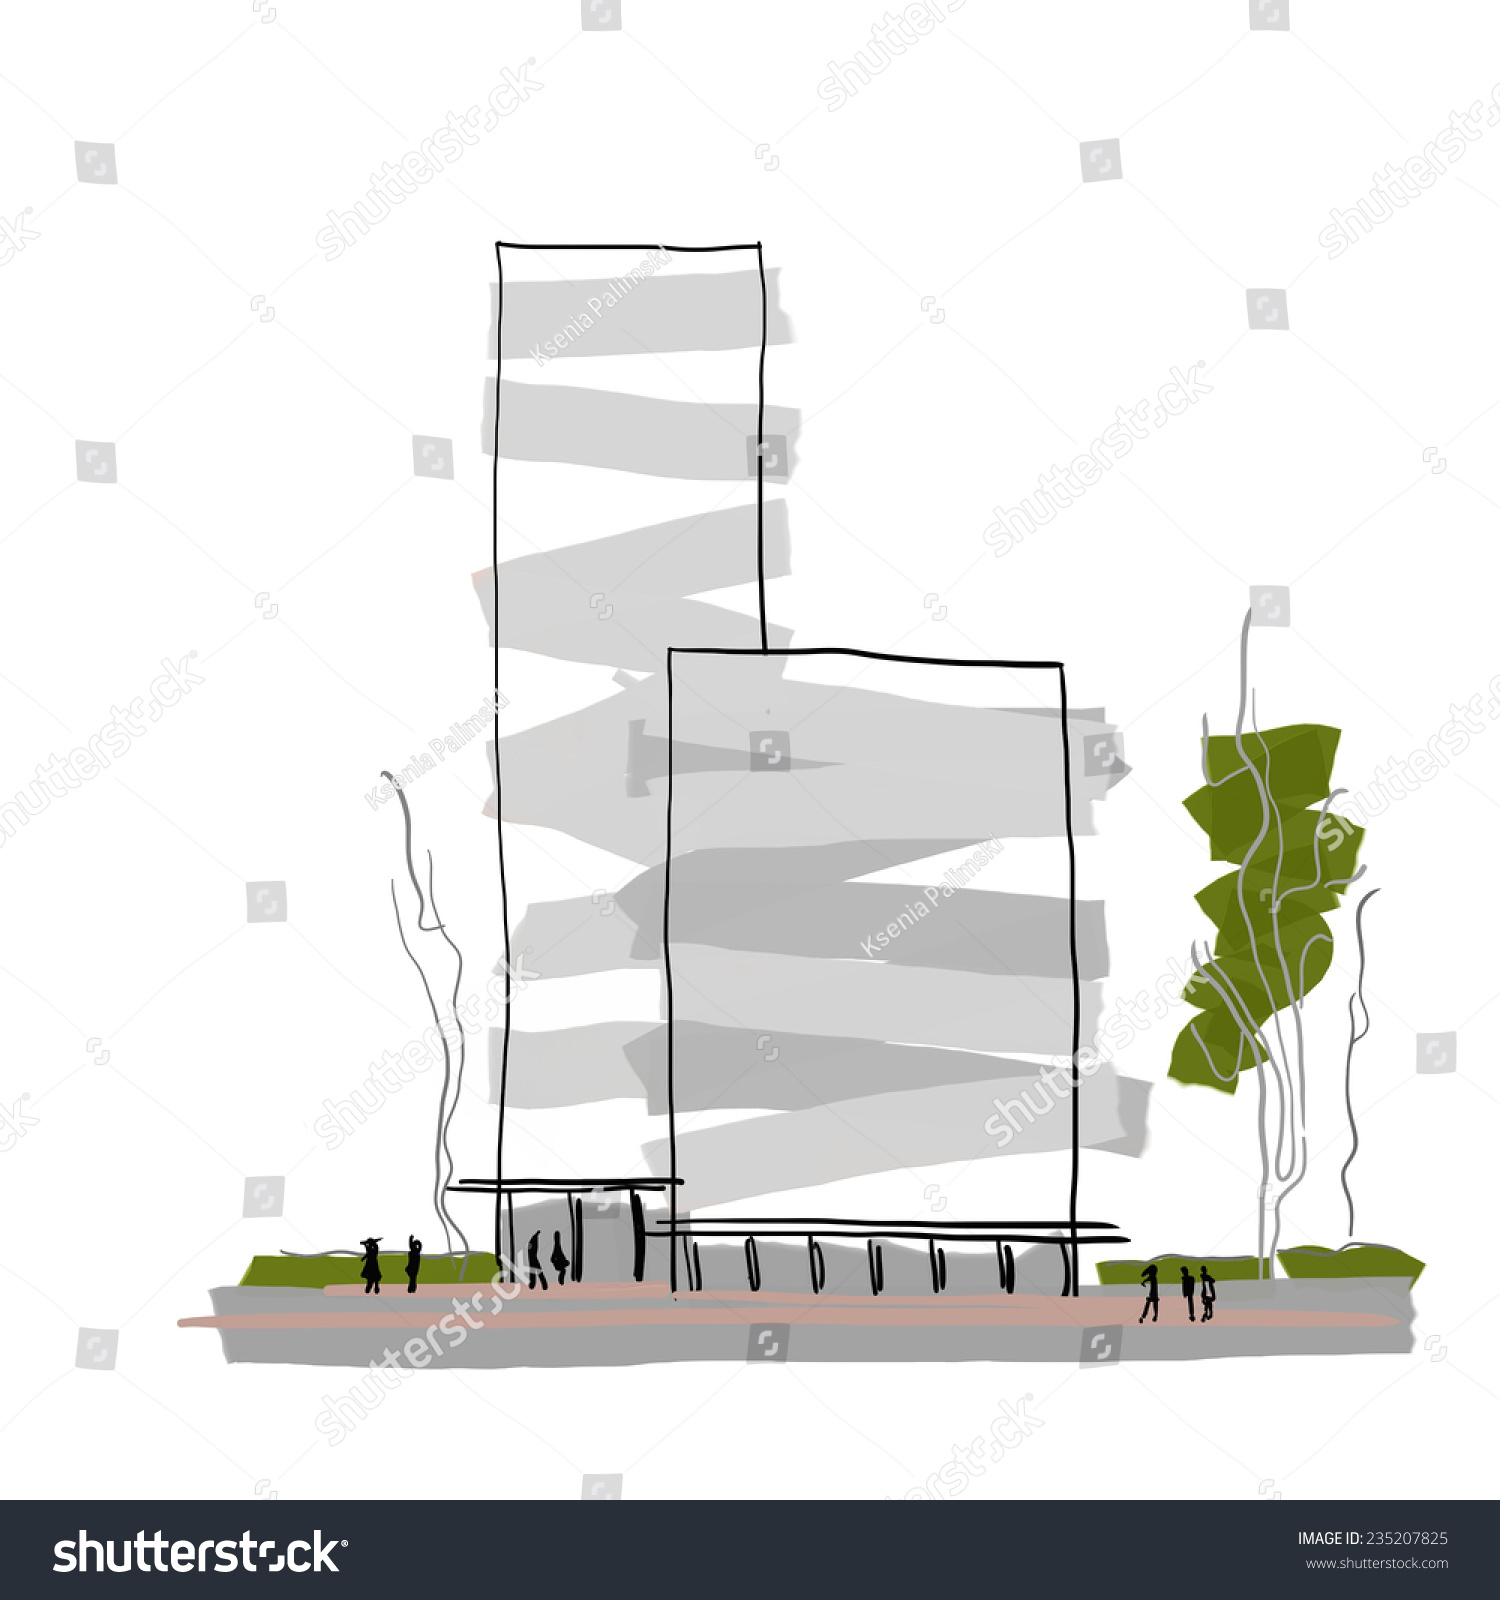 Modern Architecture Multistorey Building Design Abstract Stock